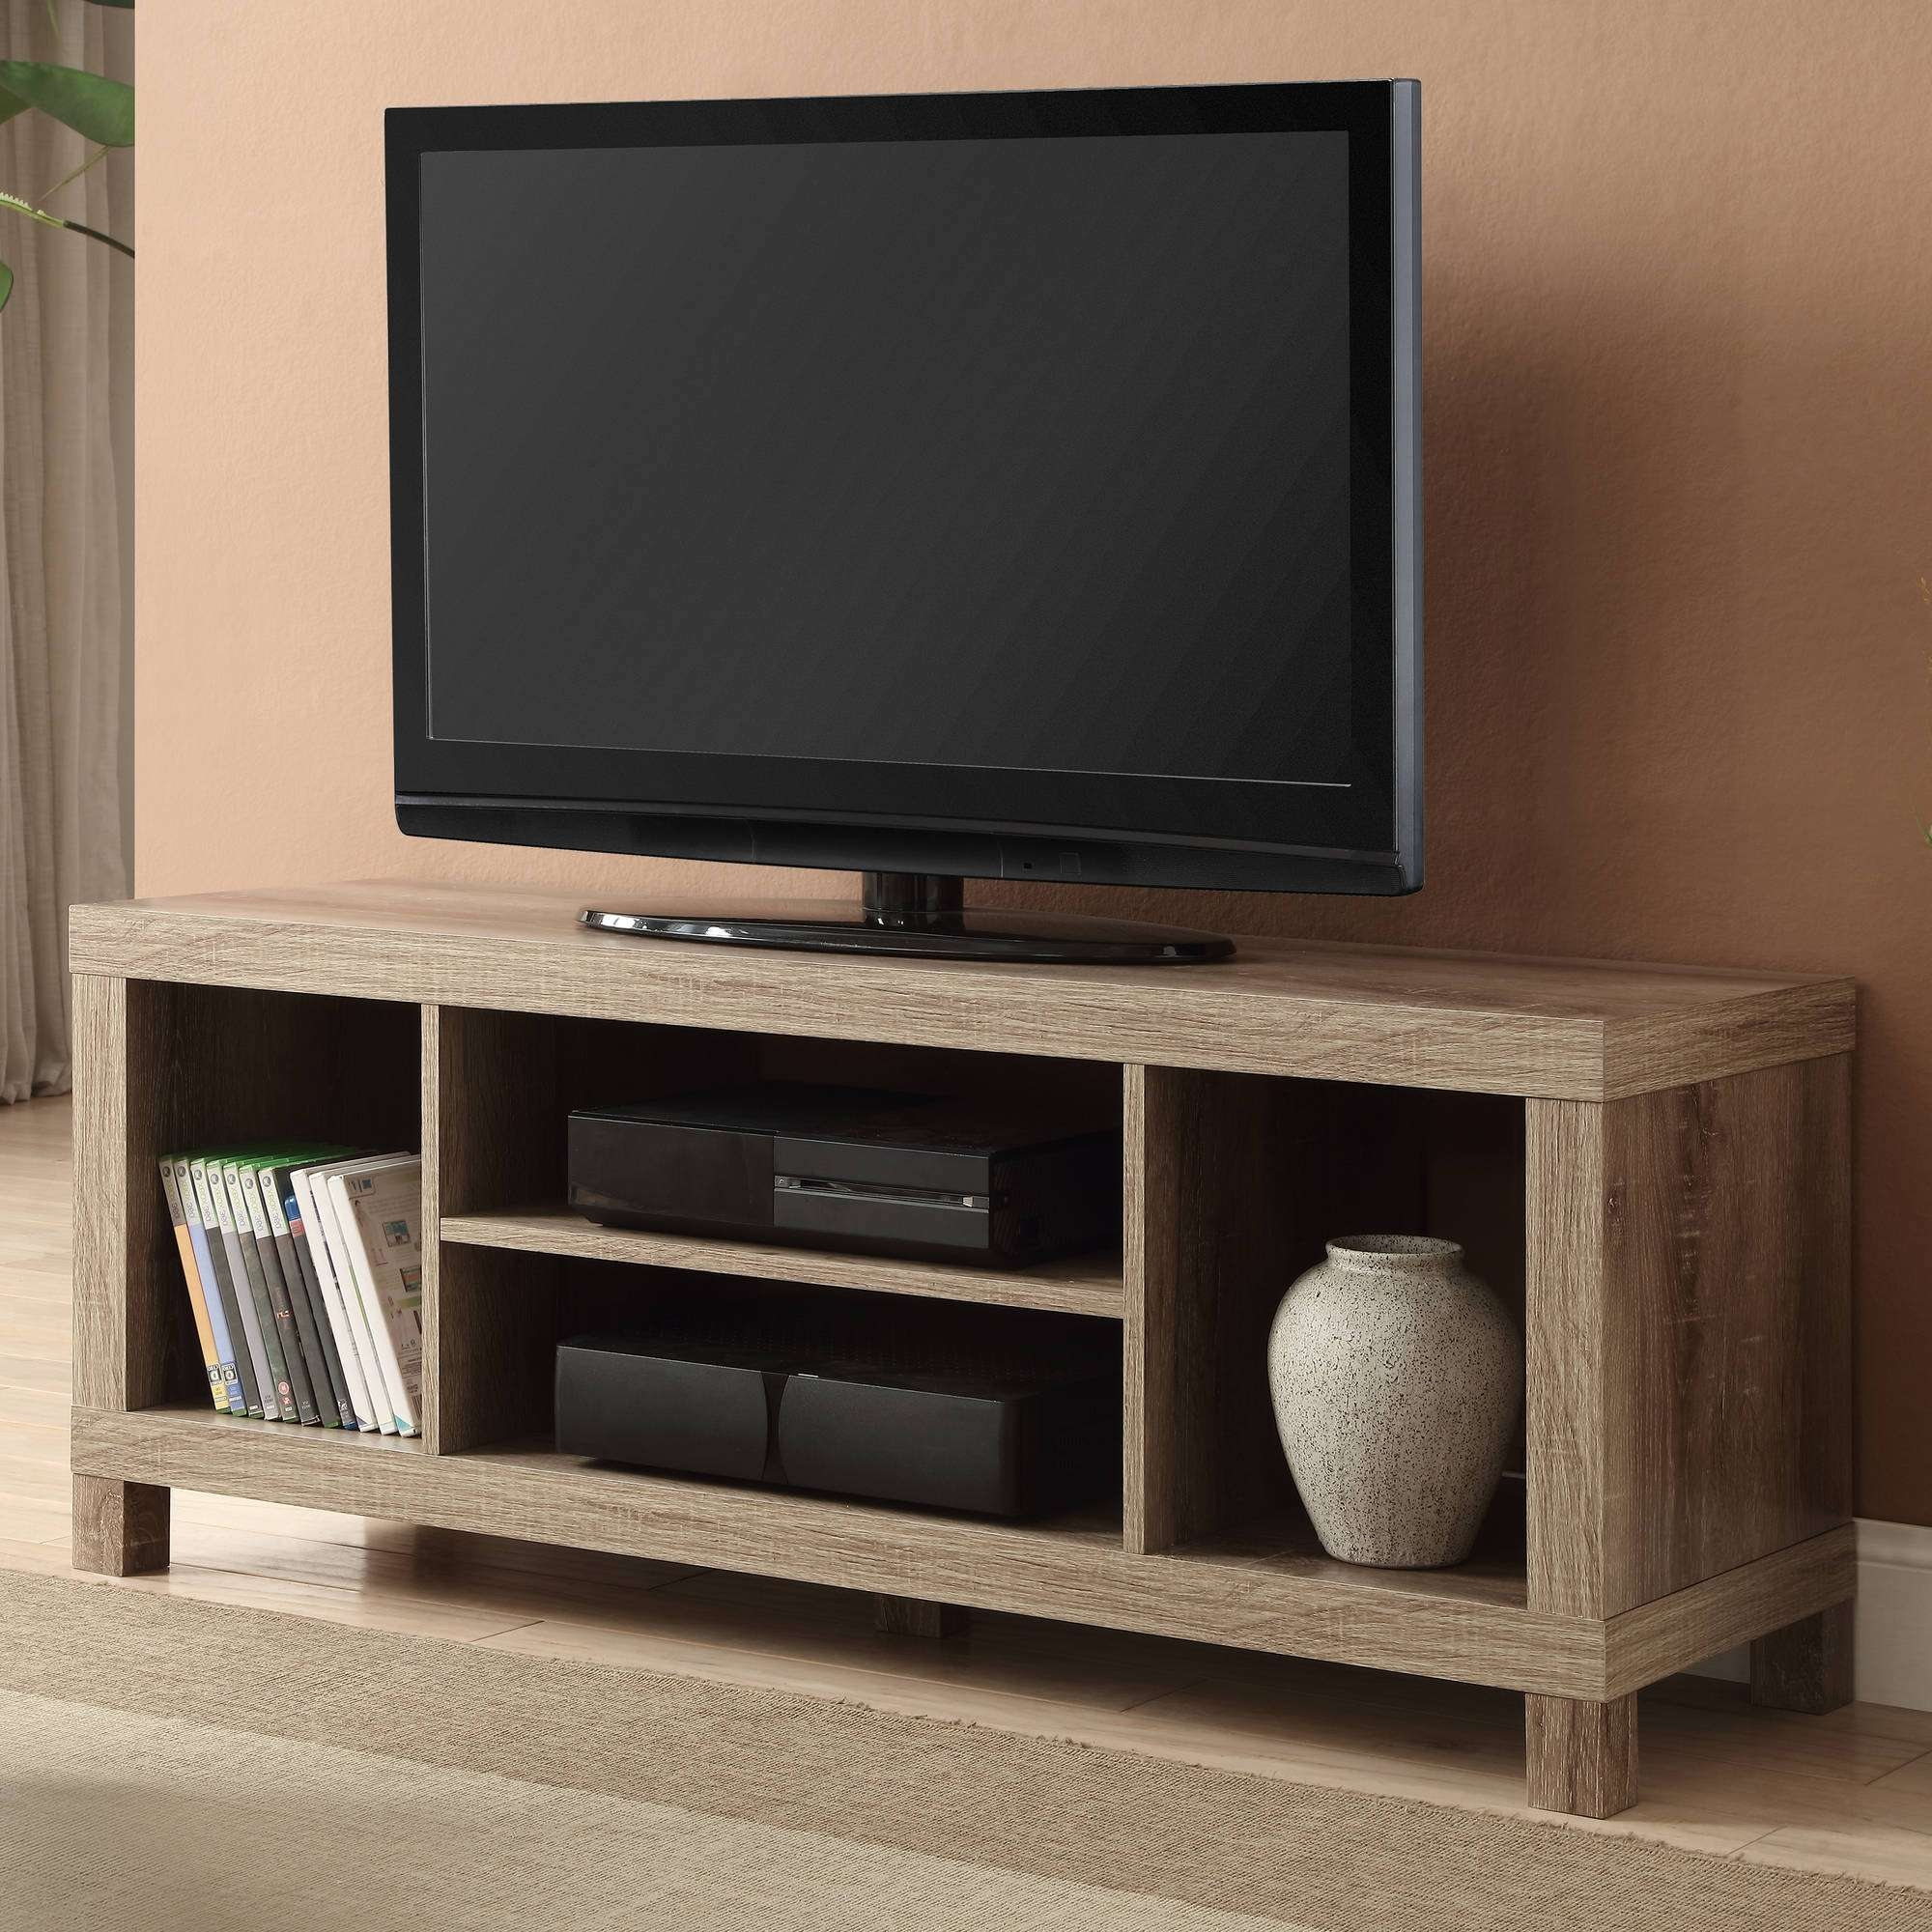 "Black Oak Tv Stand For Tvs Up To 42"" – Walmart Regarding Oak Tv Stands For Flat Screens (View 2 of 15)"